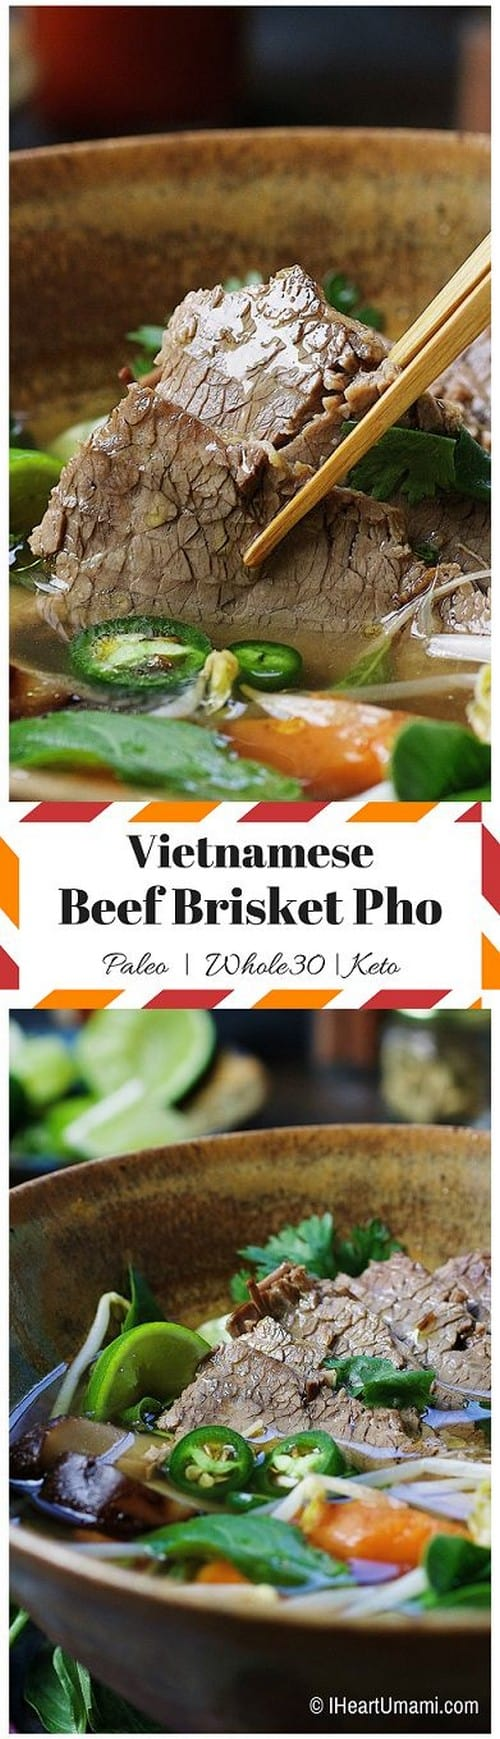 Whole30 Paleo Beef Brisket Pho